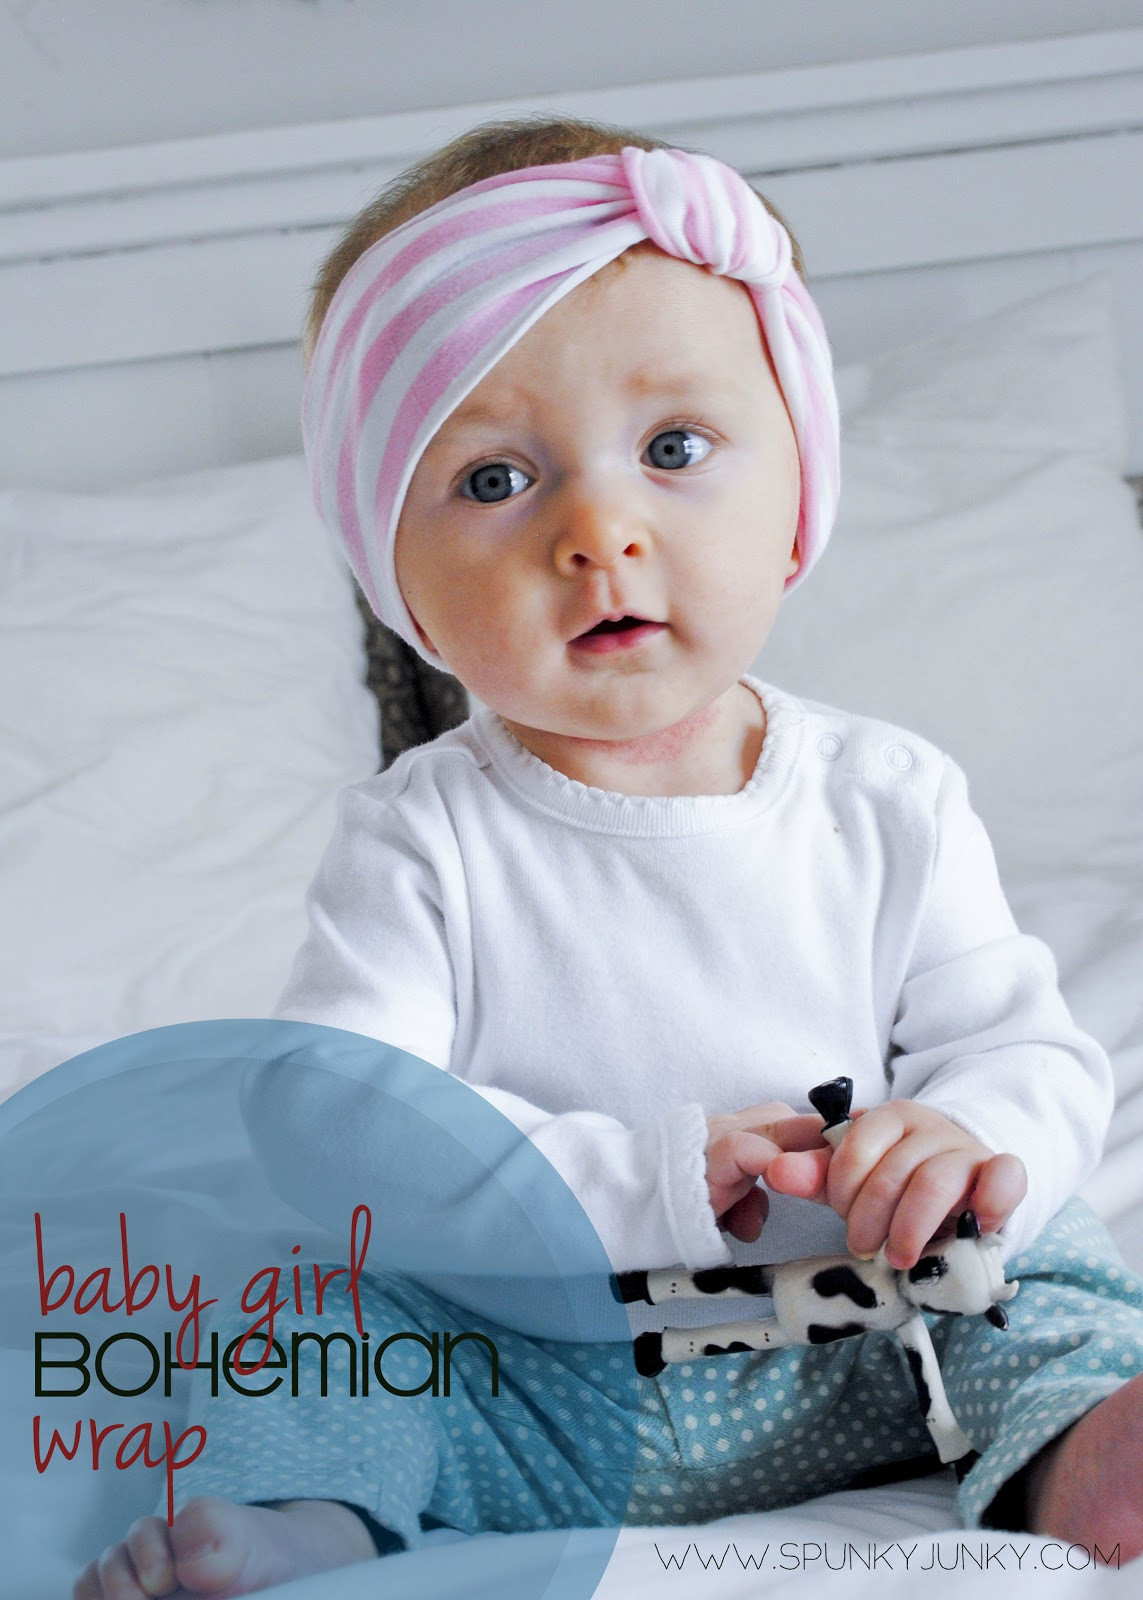 Best ideas about Baby Girl Headband DIY . Save or Pin Spunky Junky DIY Baby Girl Bohemian Wrap Now.